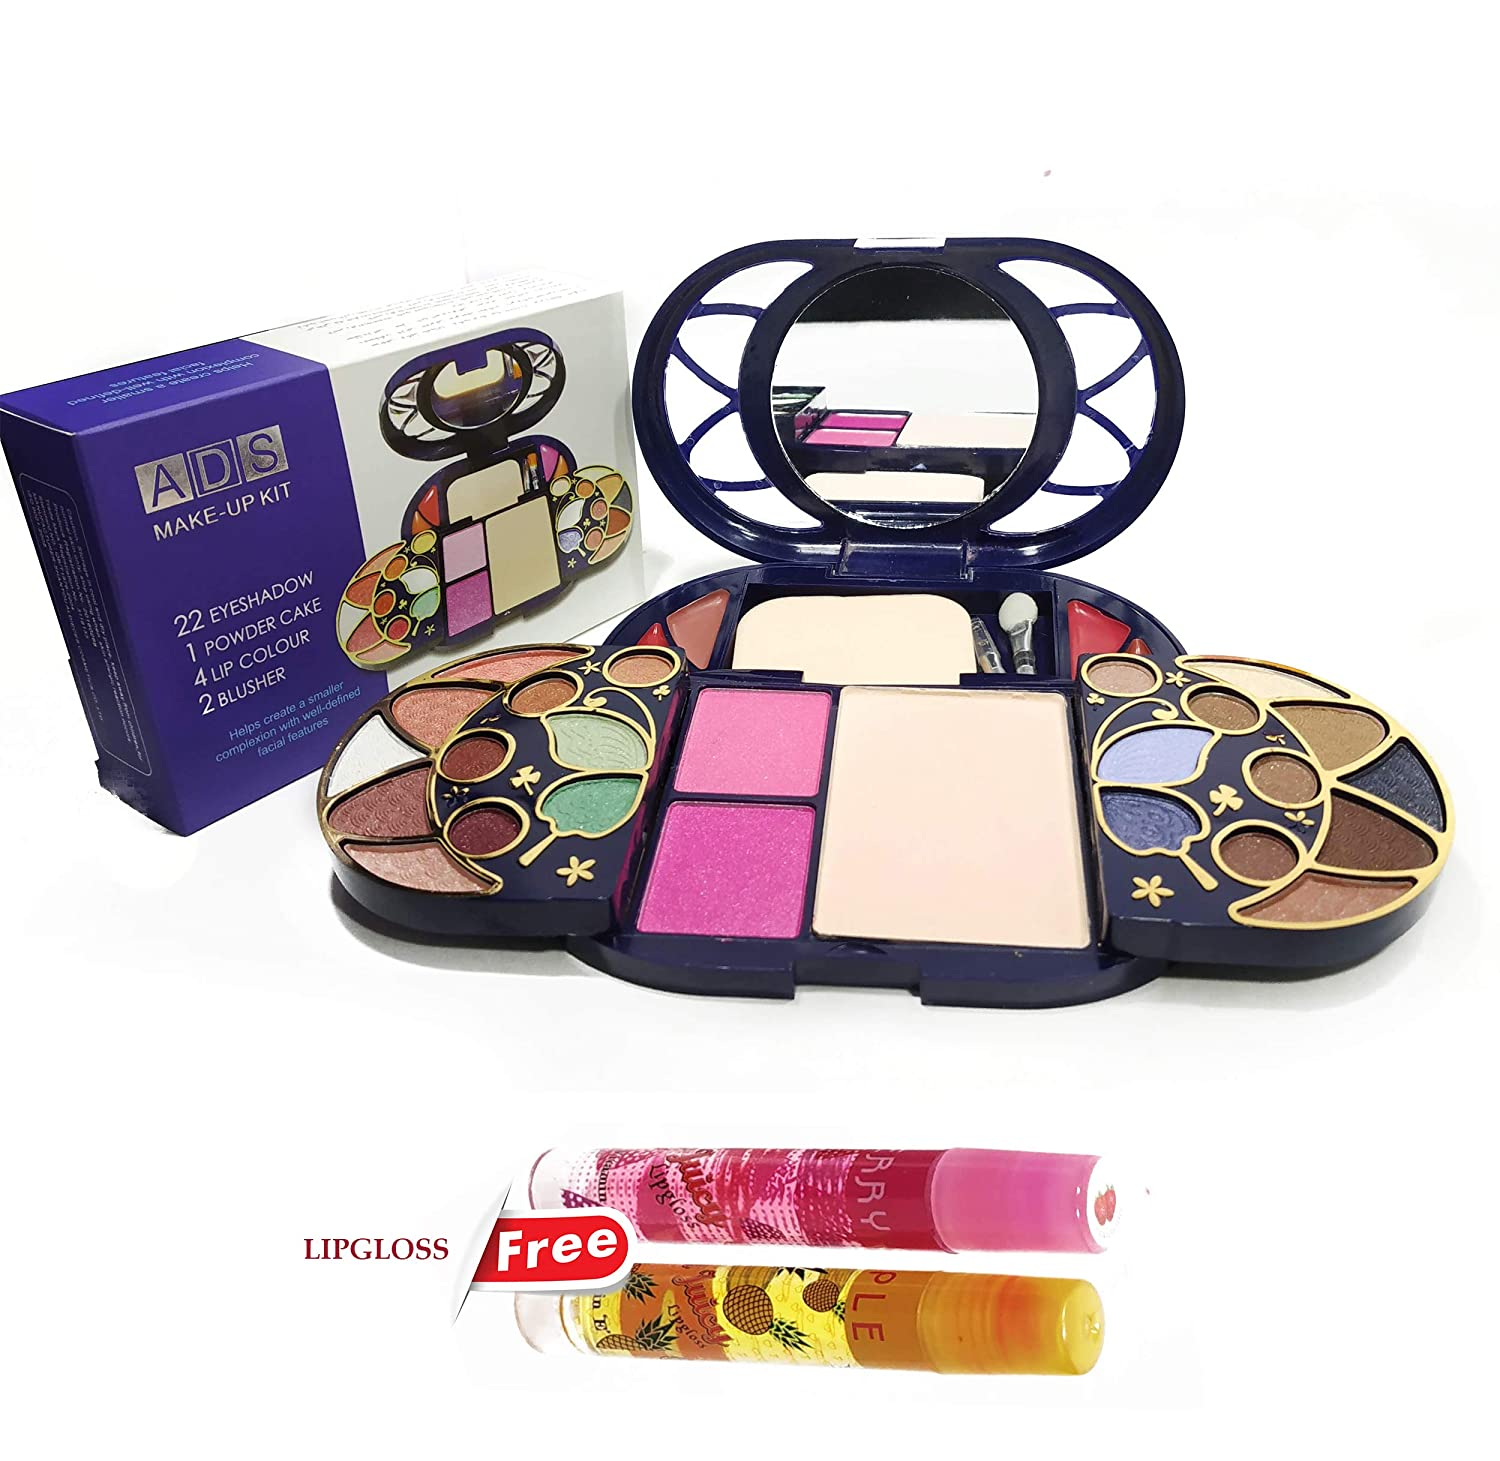 Ads Color Series Make Up Kit 22 Eyeshadow 1 Powder Cake 4 Lip